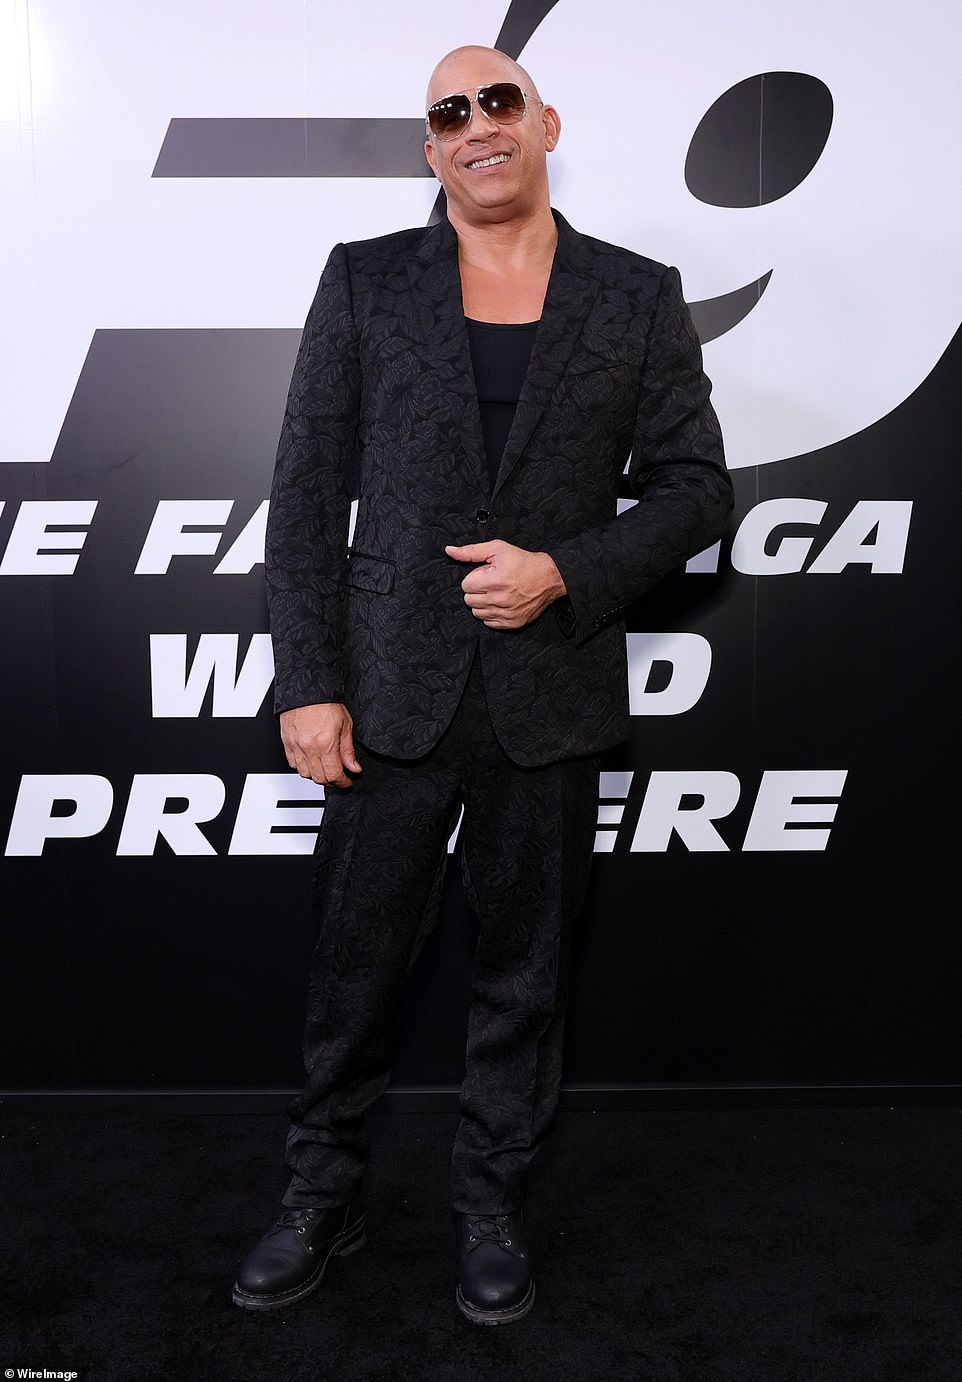 Big day: The franchise has been led by Vin Diesel over the years and he showed up in a detailed suit